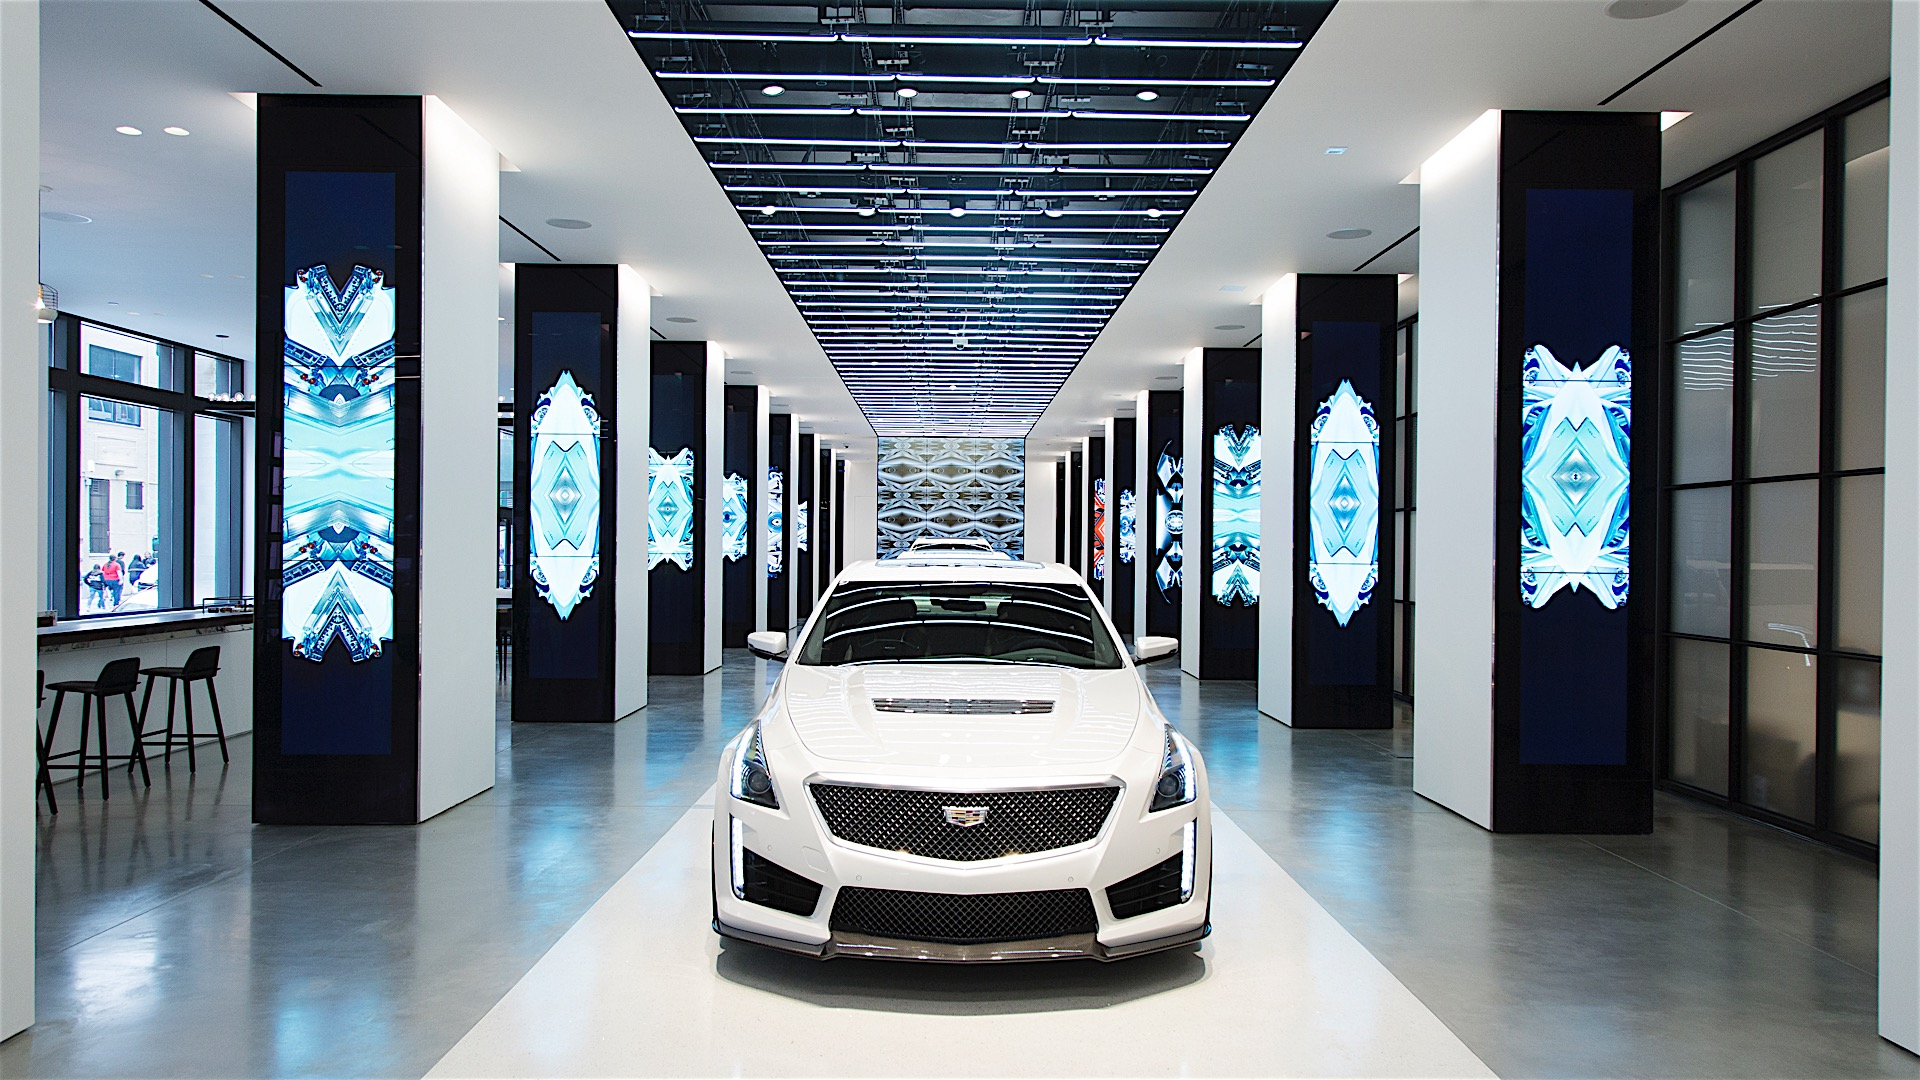 cadillac opens concept store in new york calls it cadillac house autoevolution. Black Bedroom Furniture Sets. Home Design Ideas